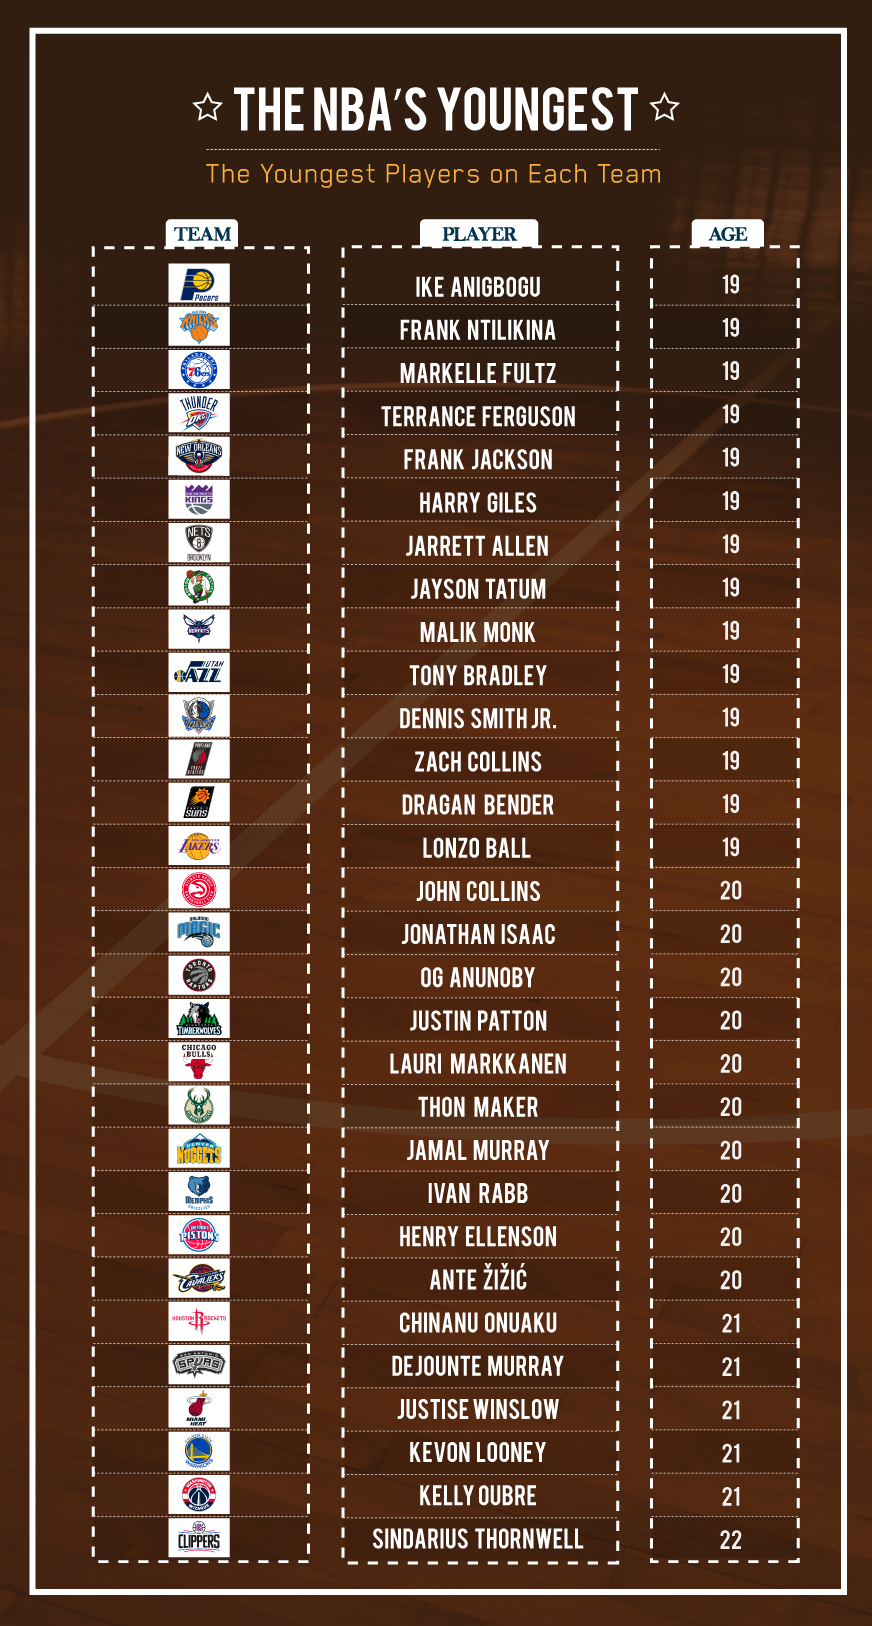 Youngest-NBA-Players-By Team